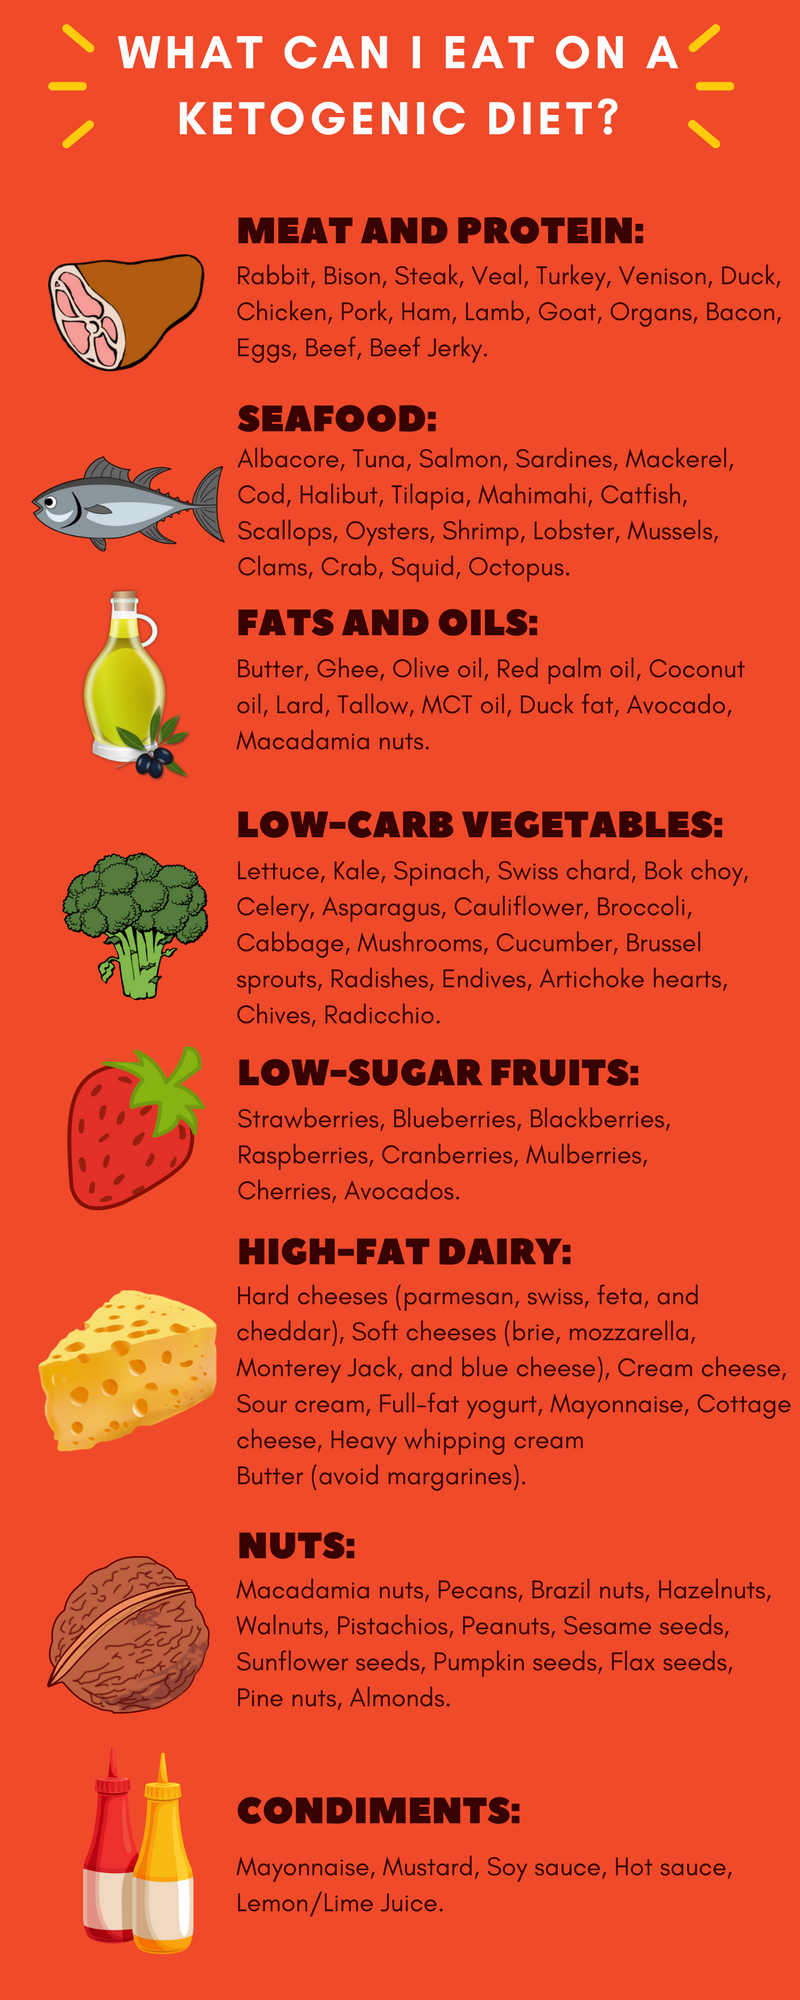 How Many Calories Should I Eat A Day To Lose 2 Pounds A Week Ketodiet Ketodietplan Ketodietreset K In 2020 Ketogenic Diet Starting Keto Diet Recipes Ketogenic Diet